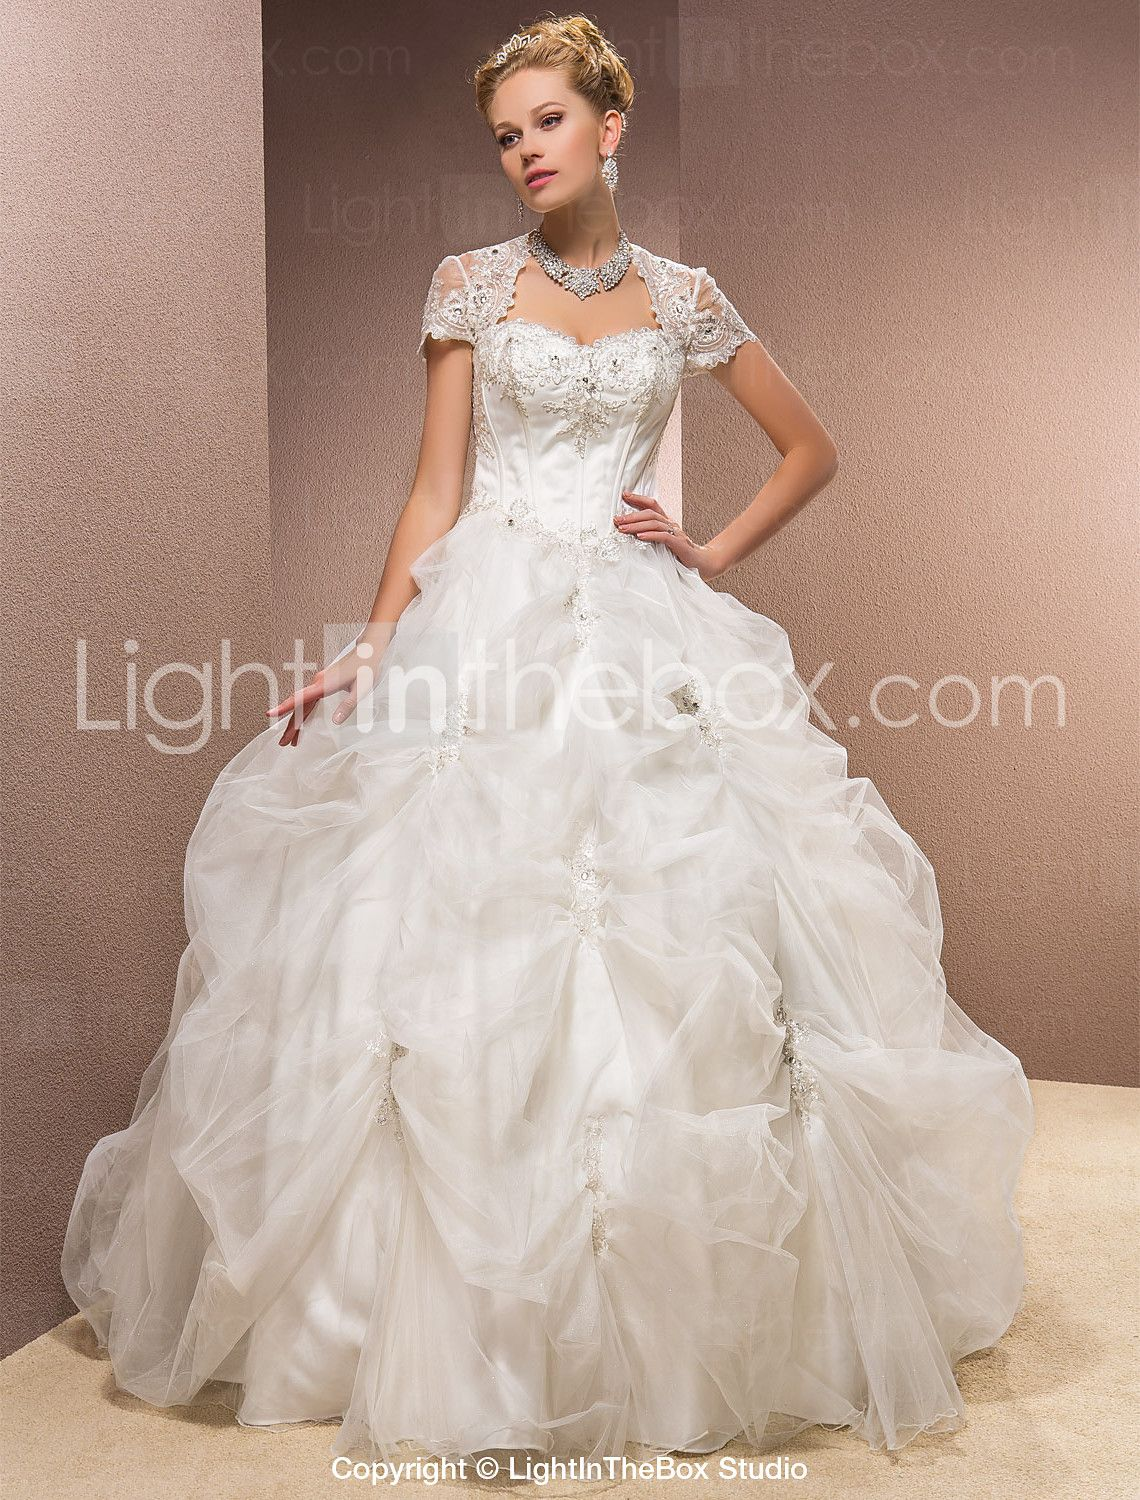 Lightinthebox wedding dresses  Ball Gown Sweetheart Satin And Tulle Floorlength Wedding Dress